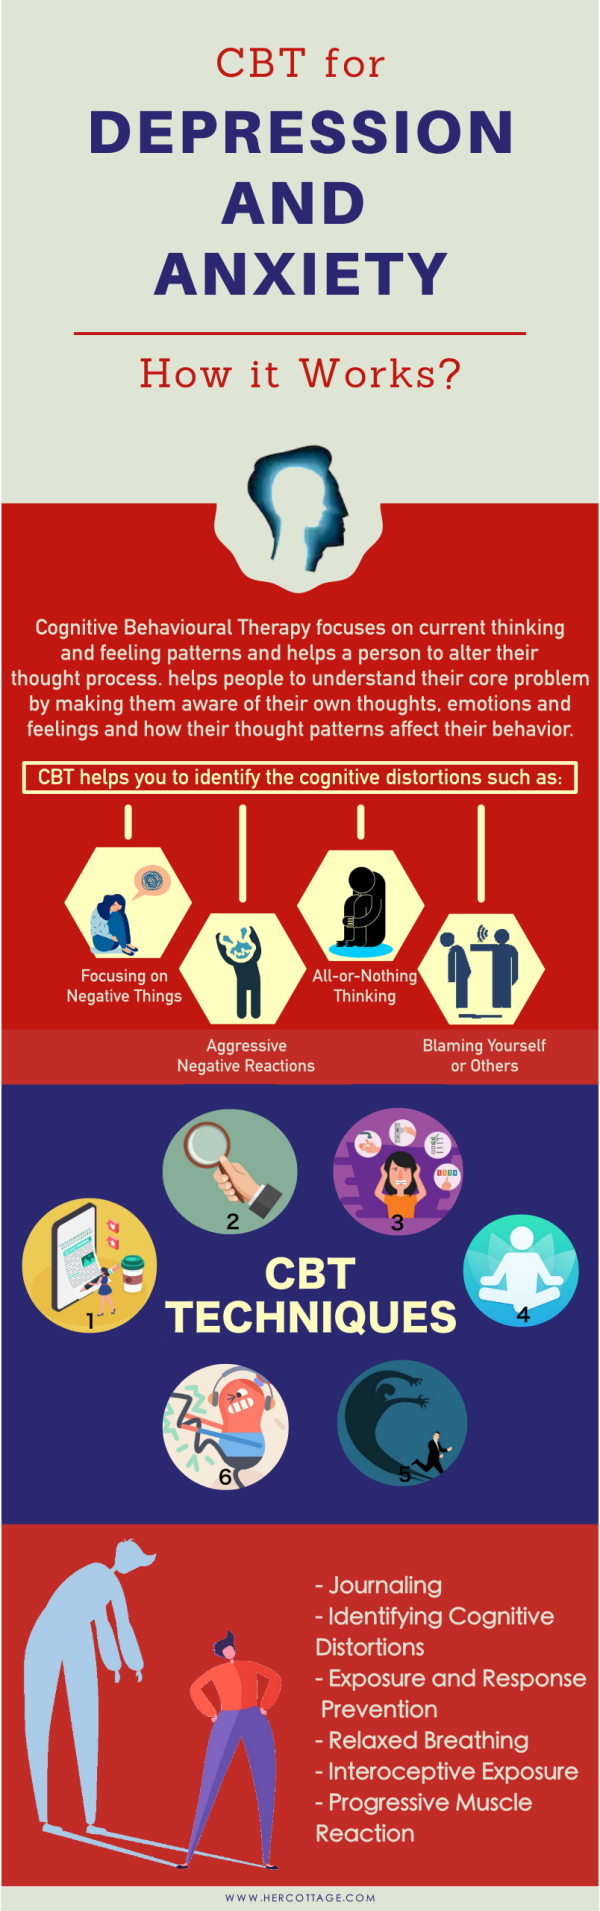 CBT-for-Depression-and-Anxiety